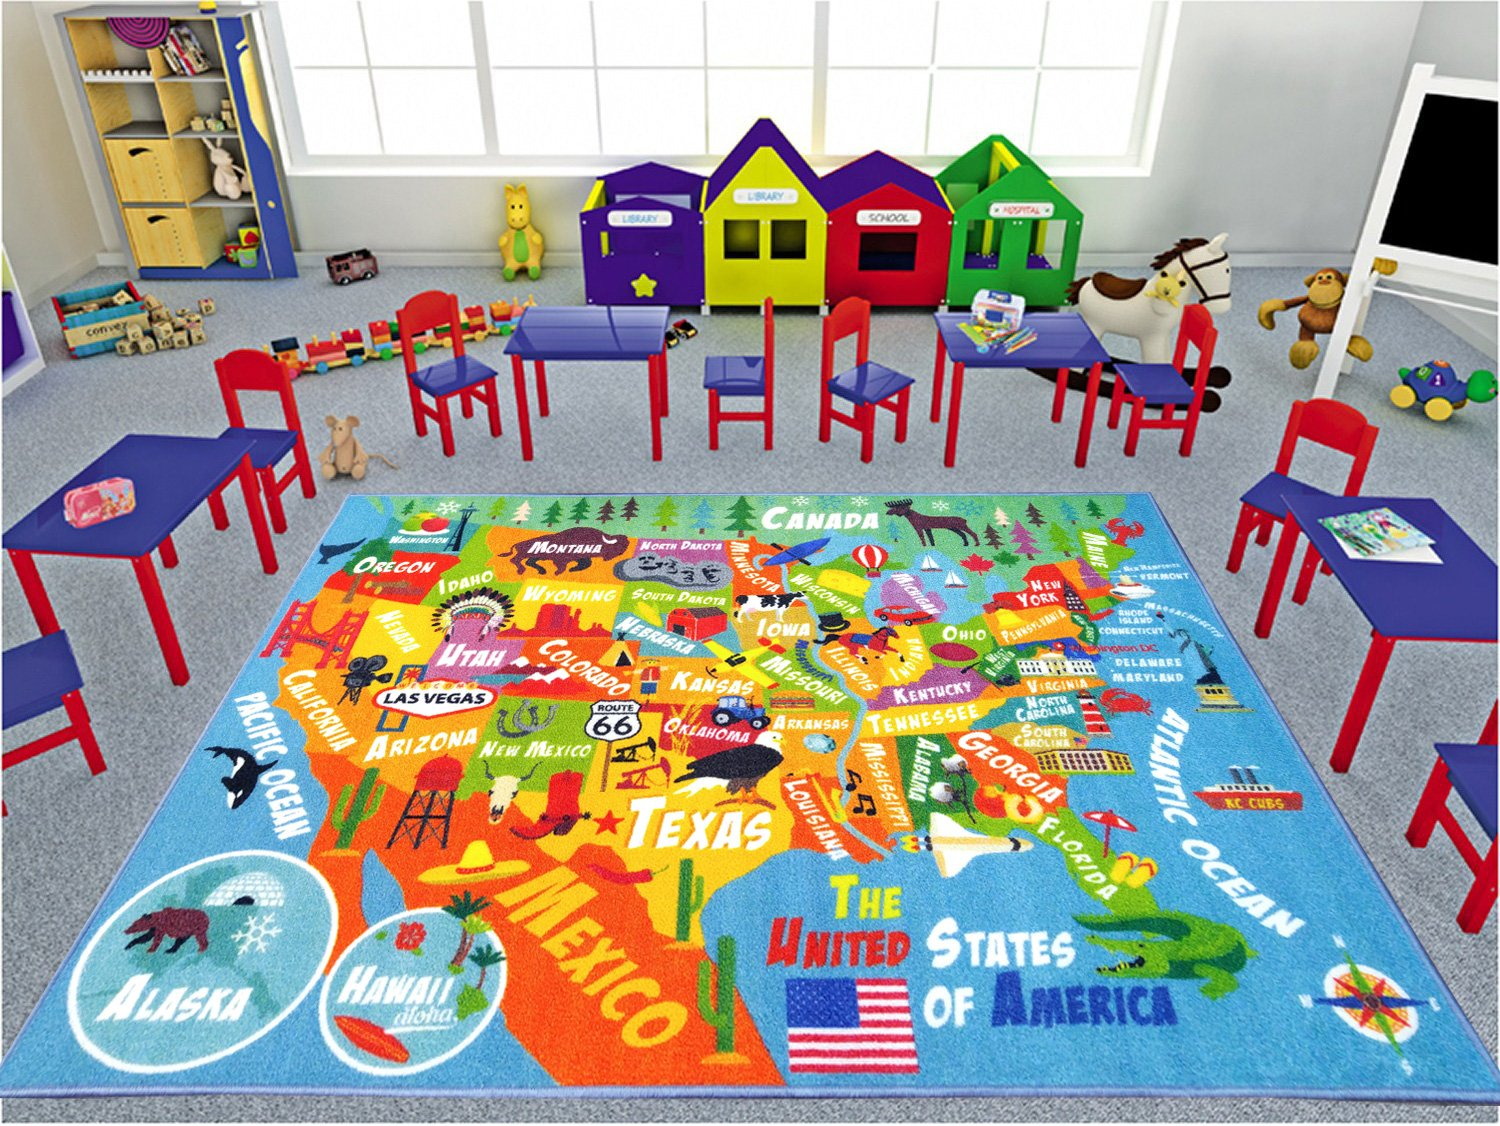 33 x 47 Kev and Cooper KC CUBS Playtime Collection USA United States Map Educational Learning /& Game Area Rug Carpet for Kids and Children Bedrooms and Playroom